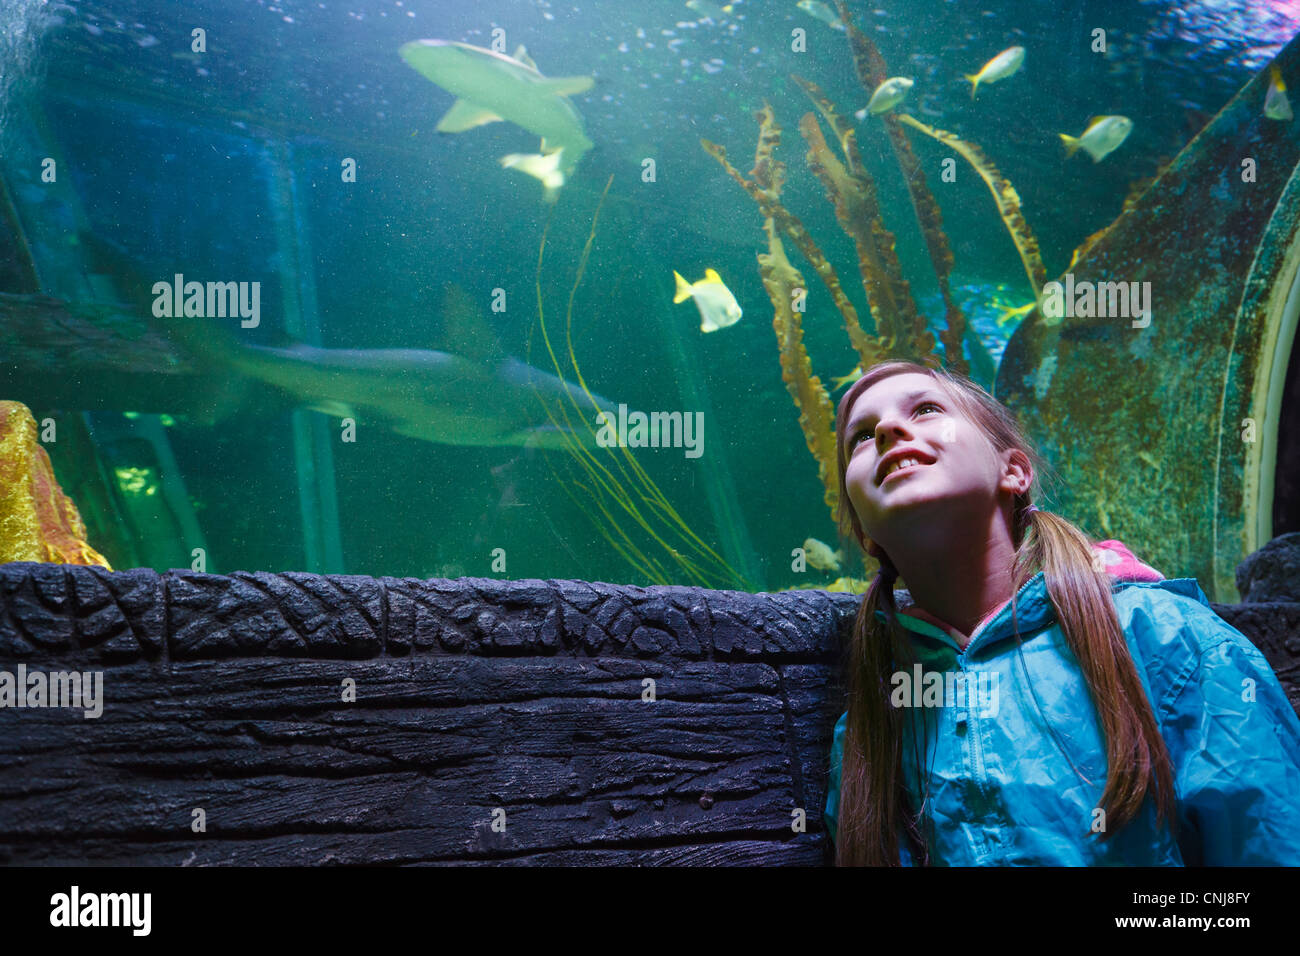 Girl looking at the fish from the 'Ocean Tunnel' at Sea Life aquarium, Blackpool. - Stock Image